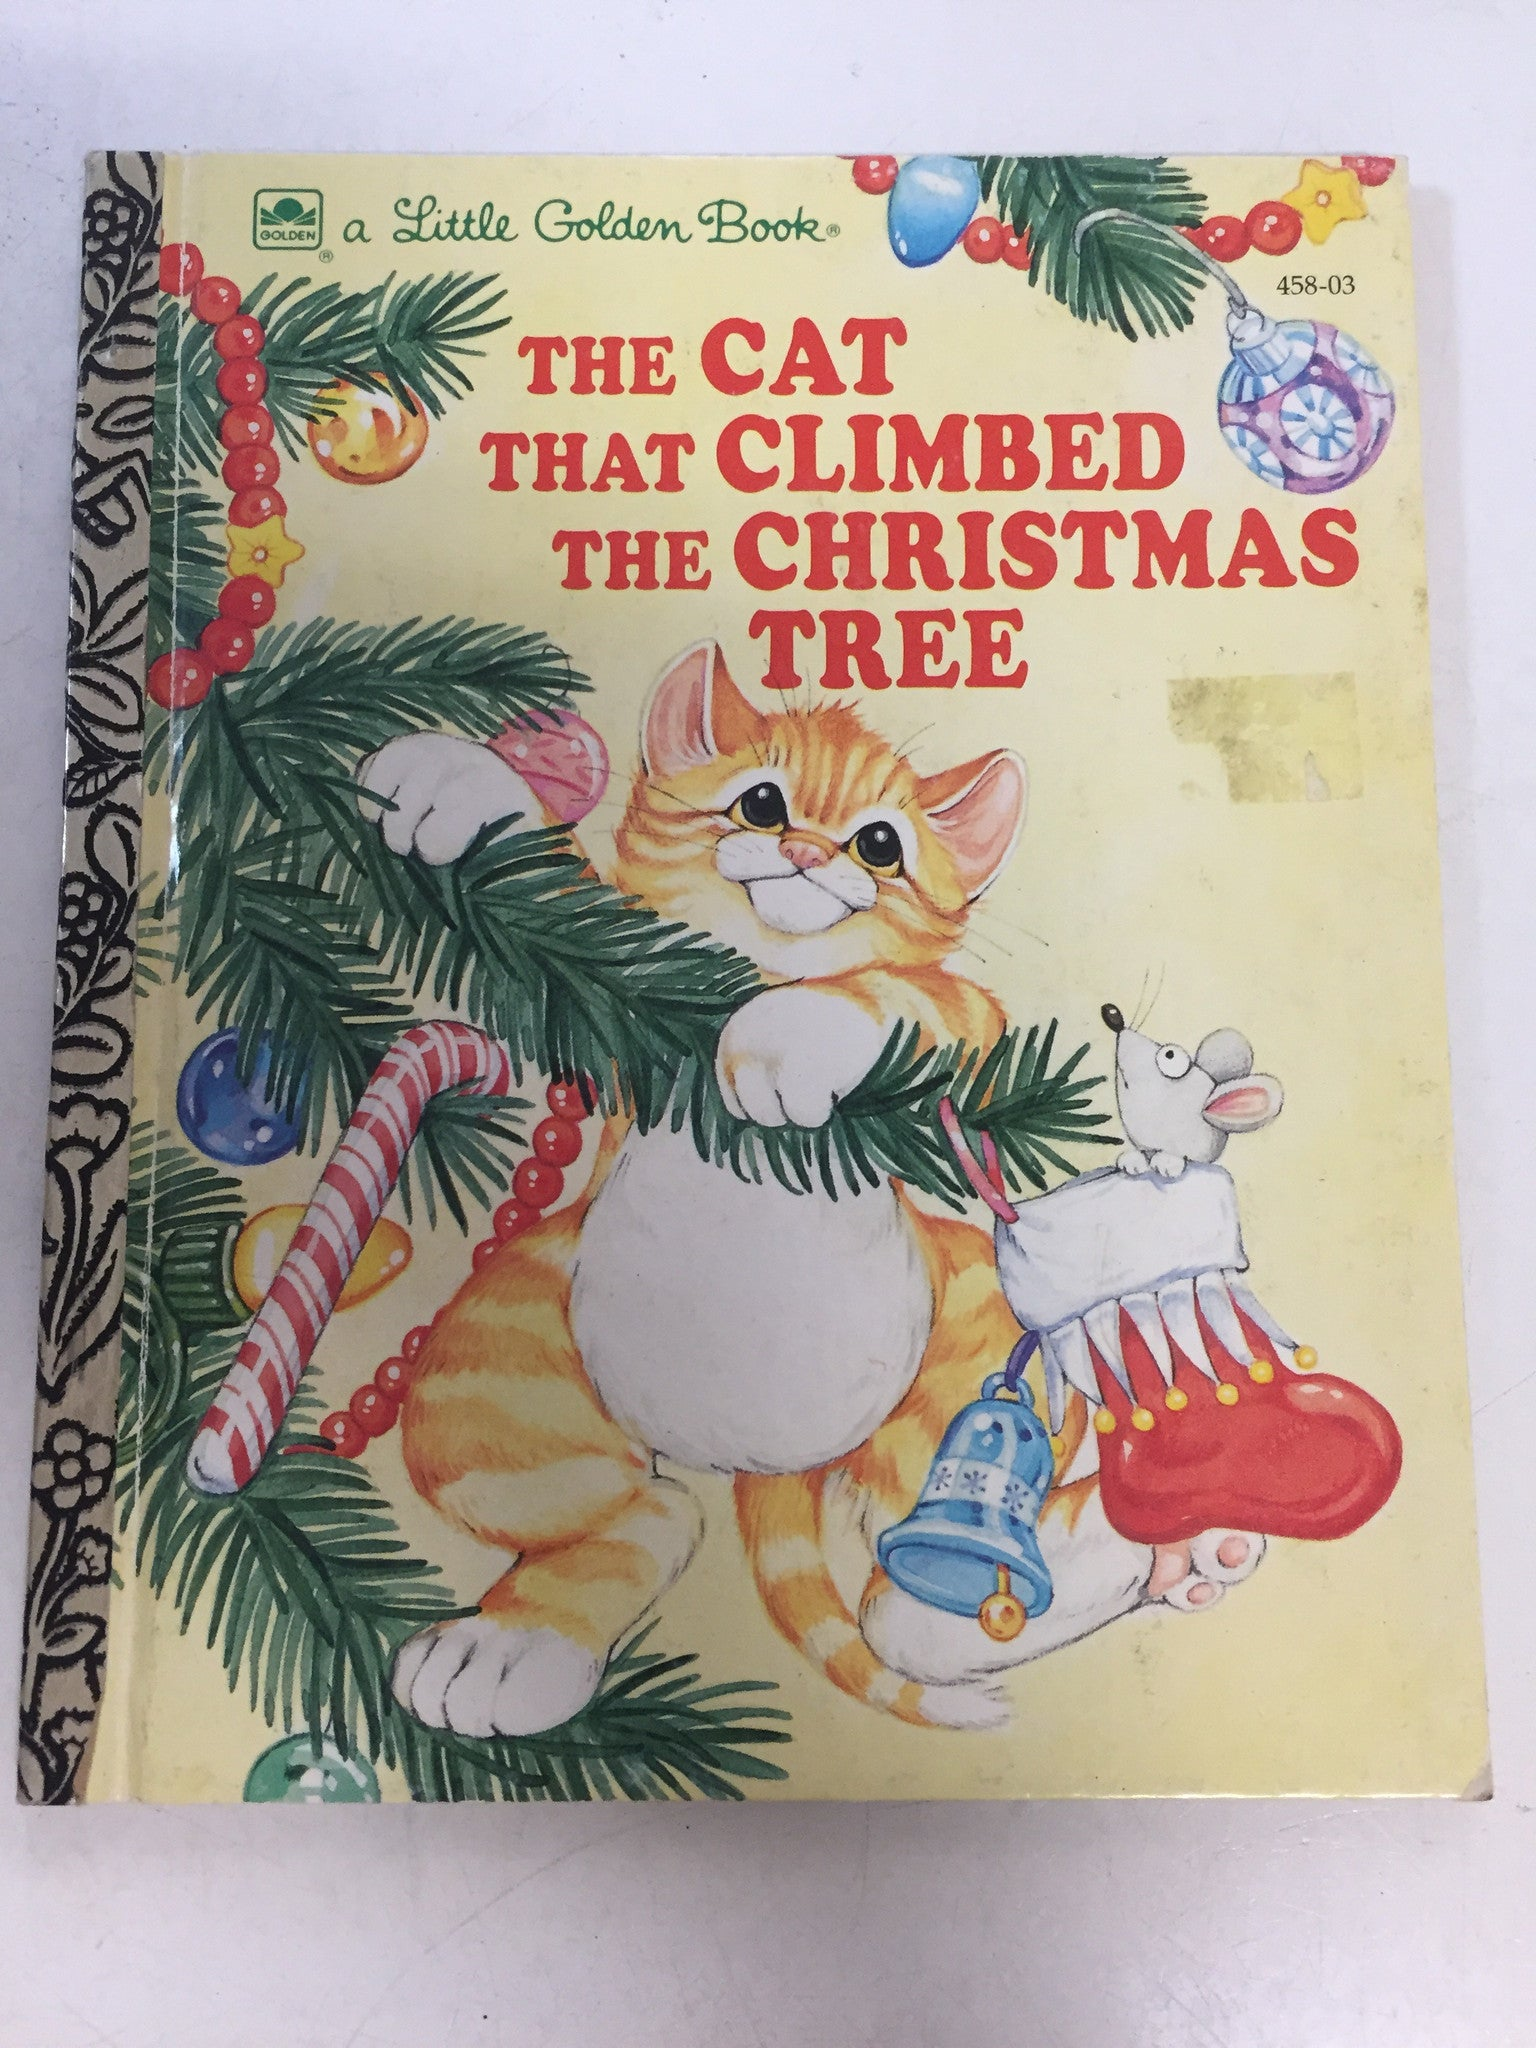 The Cat That Climbed the Christmas Tree - Slickcatbooks